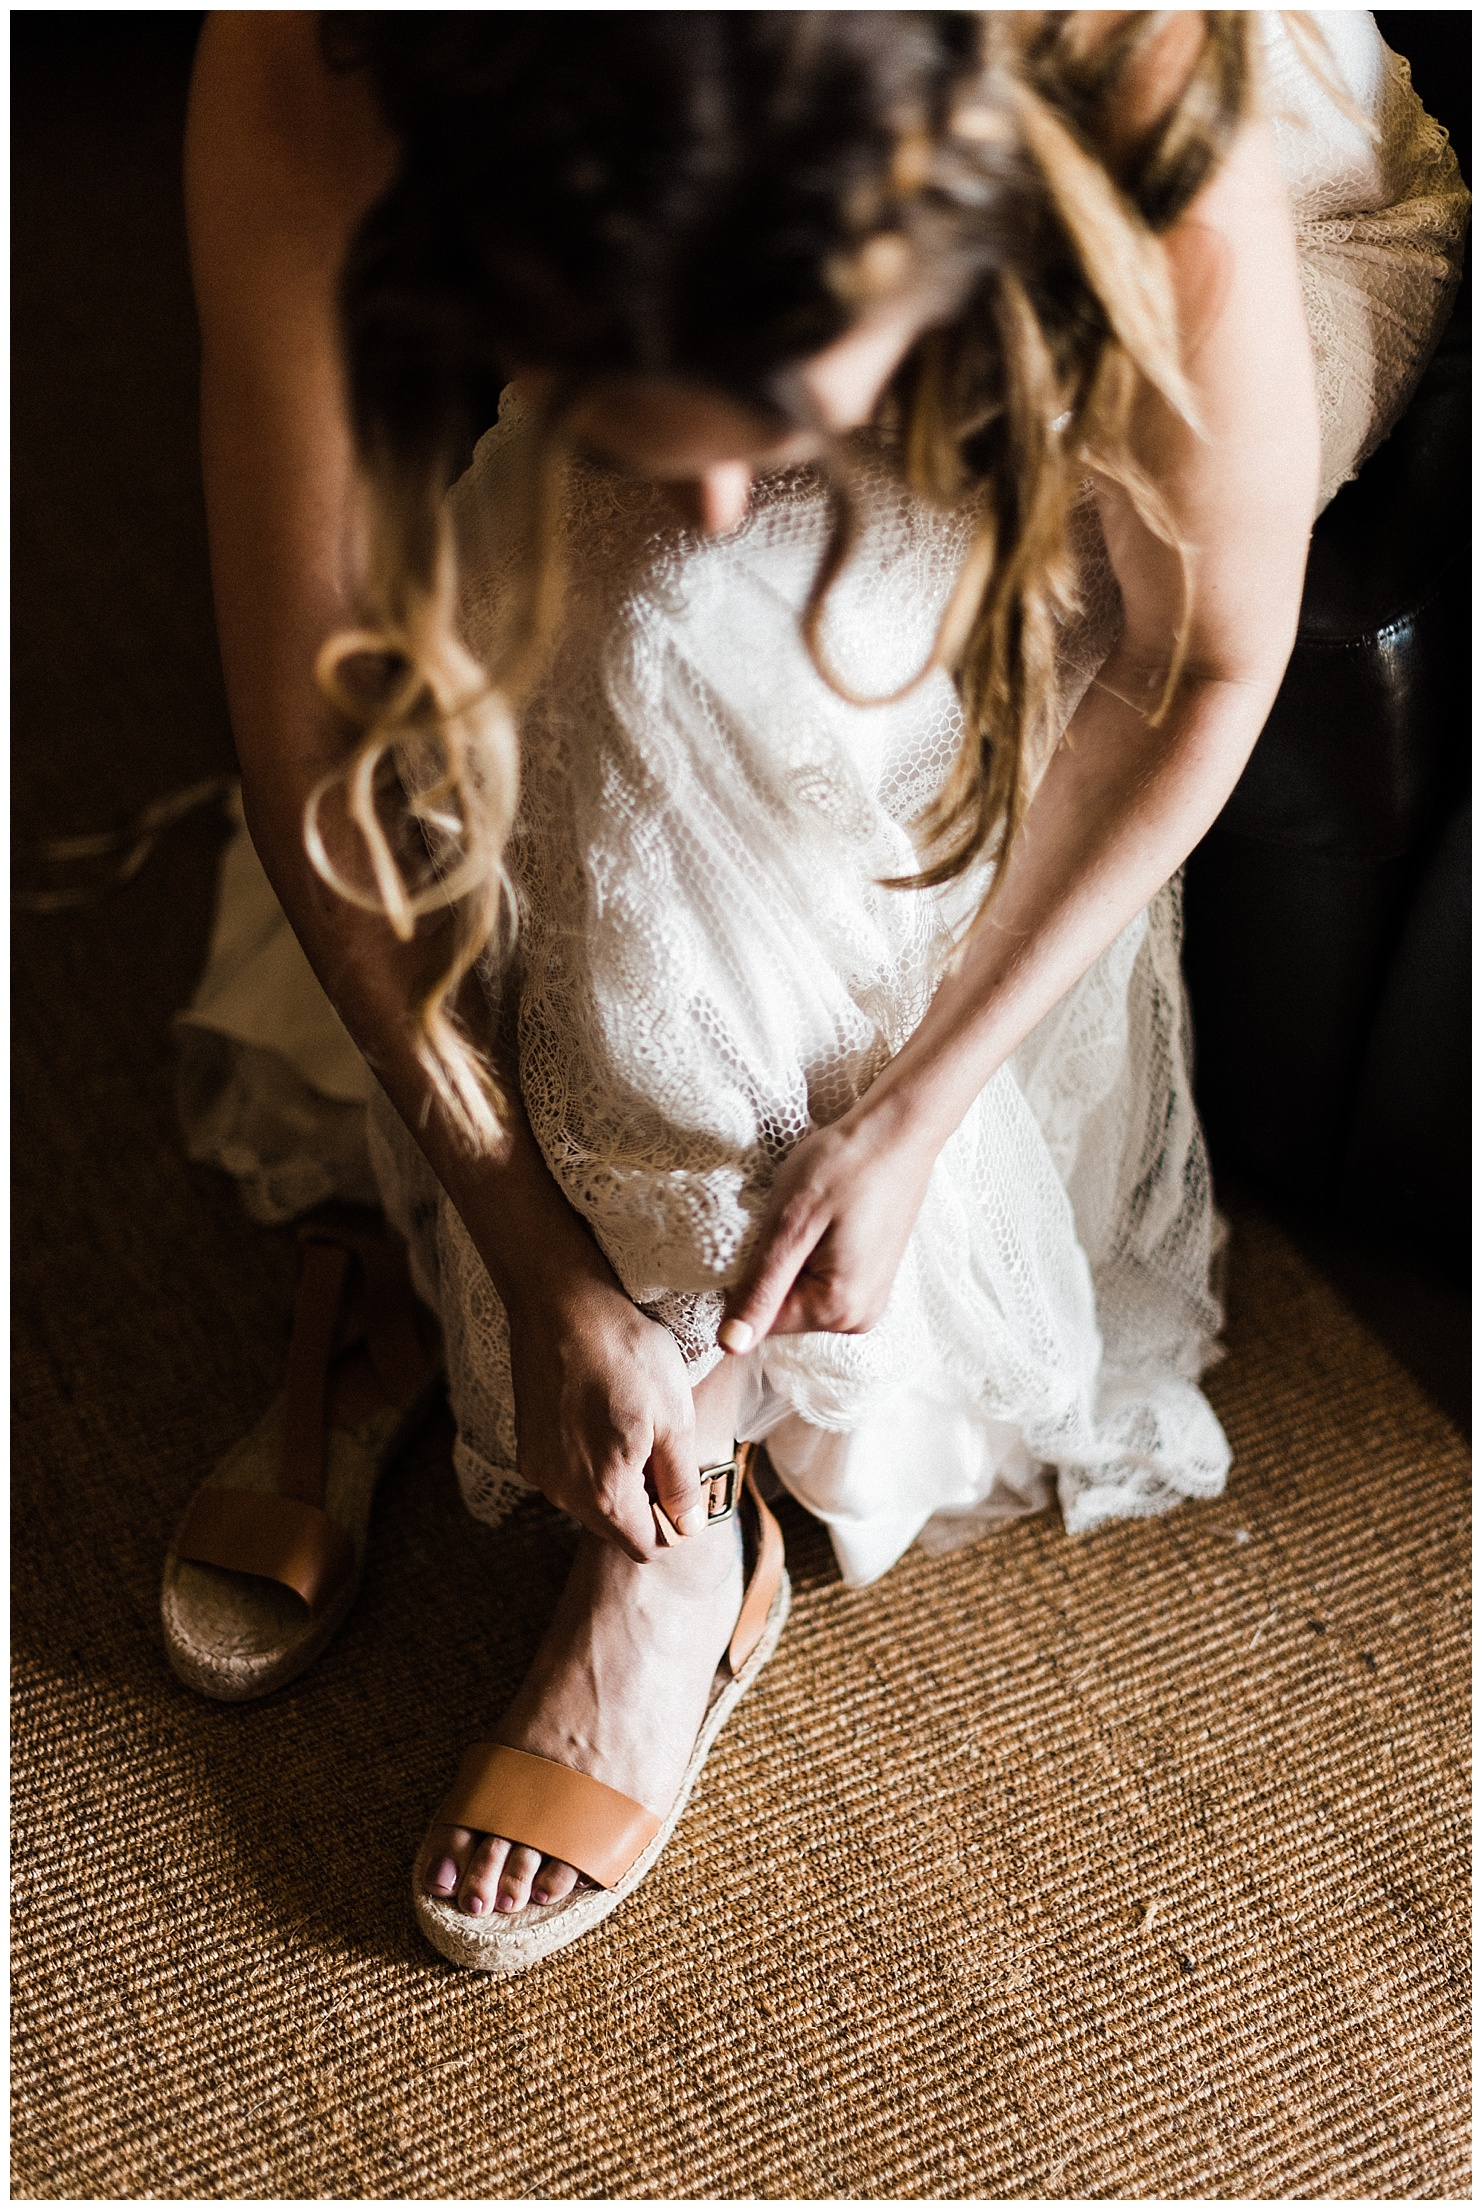 Photo of a bride putting on her shoes by Forthright Photo